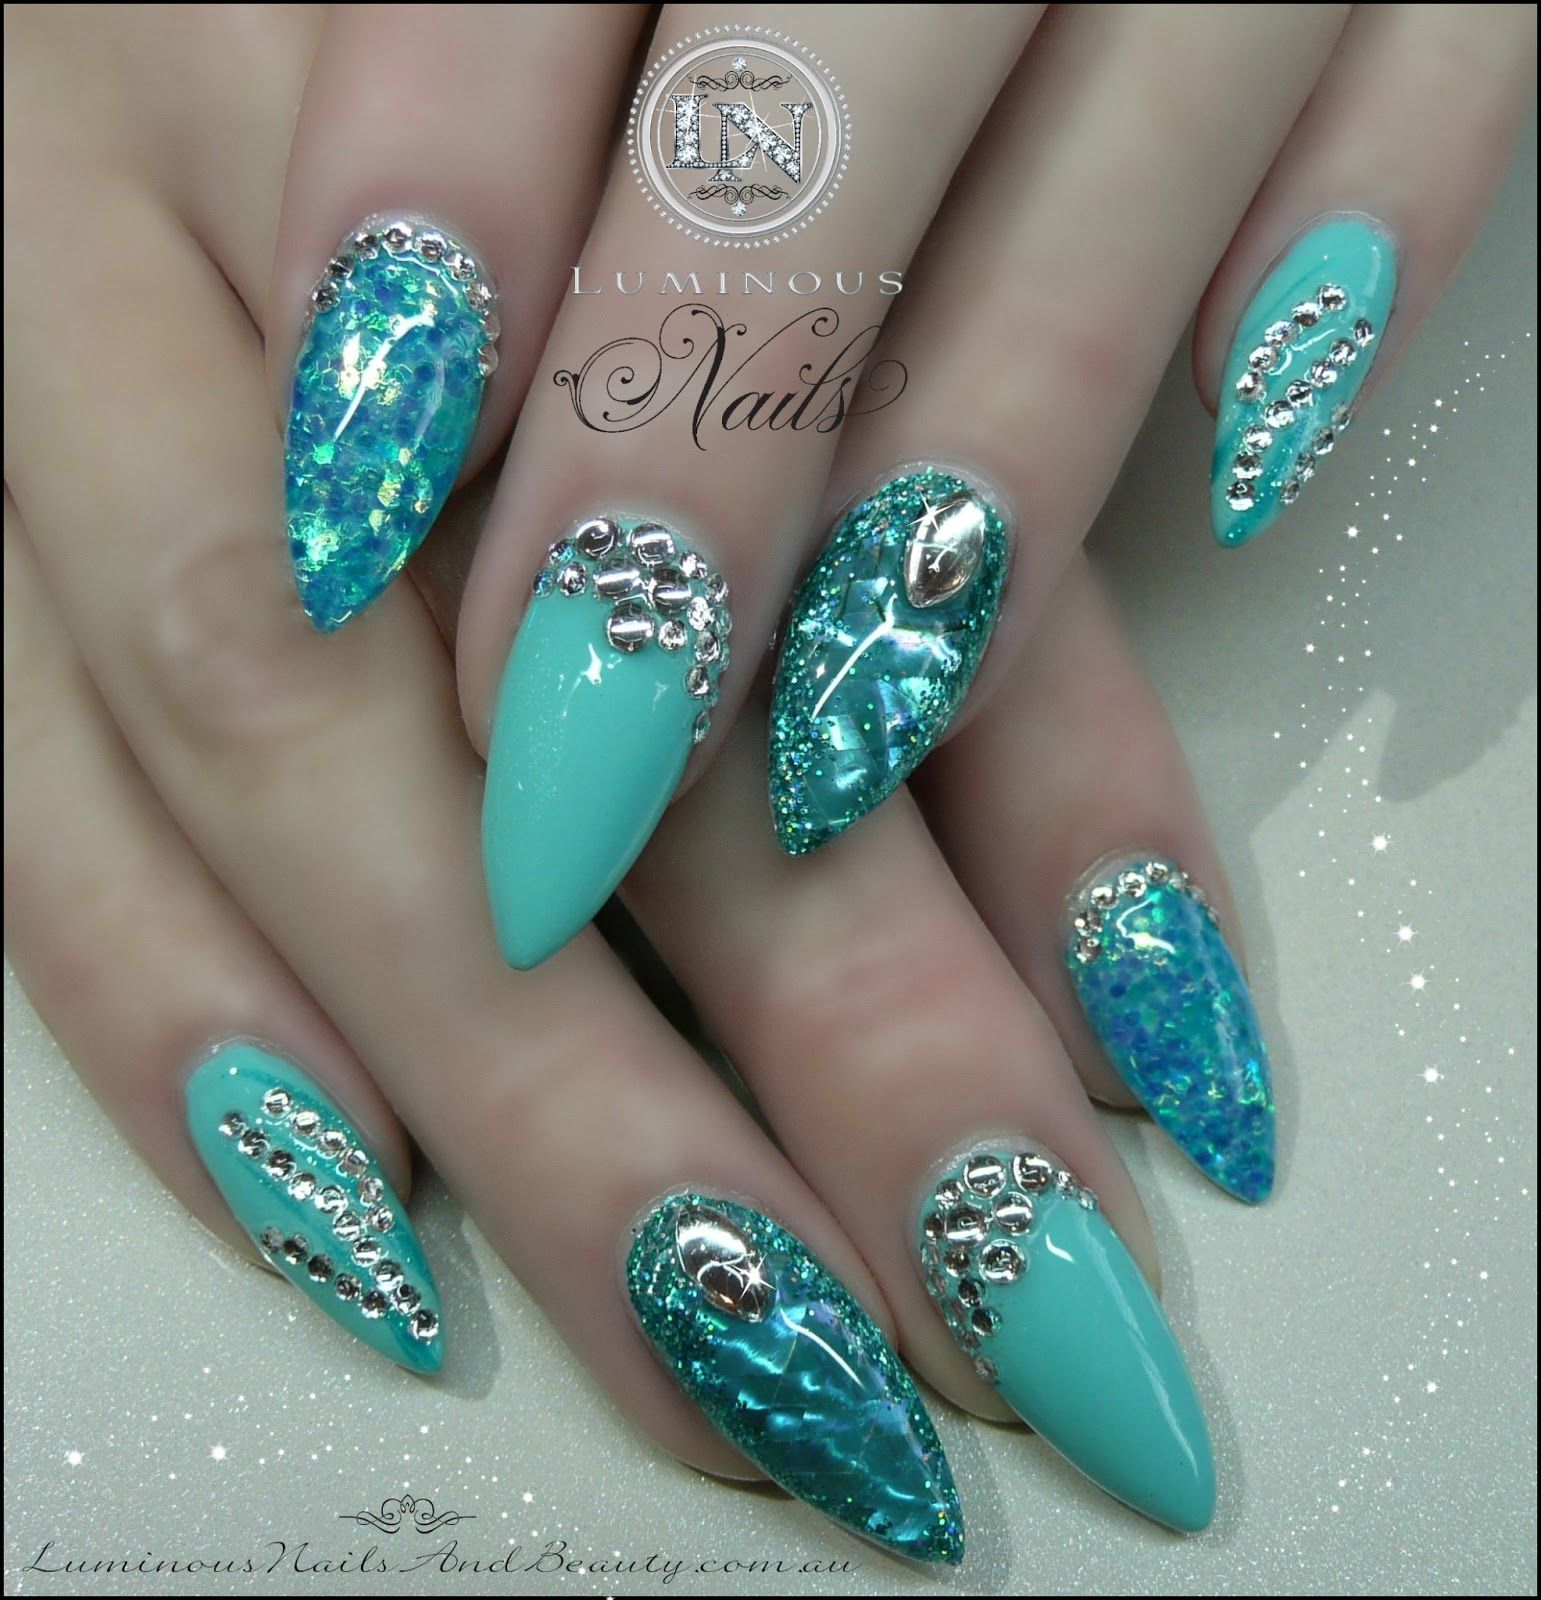 Acrylic Nail Photos With Glitter Turquoise Blue Opal Nails Shimmer